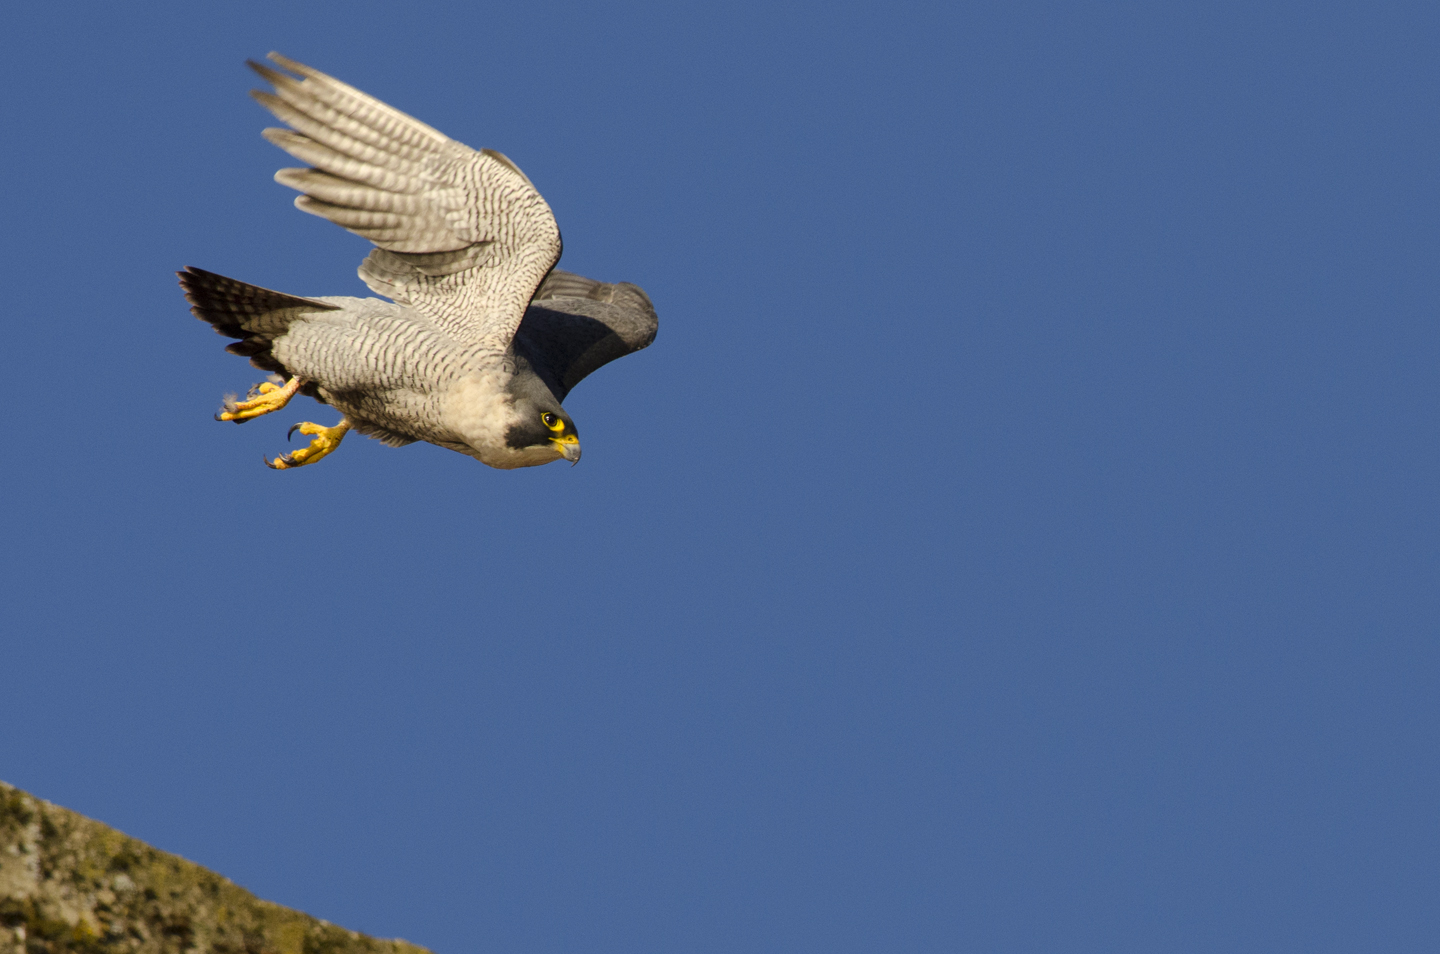 If he spots a potential target, rival, or threat he is ready to take to the air and can quickly reach remarkable speeds